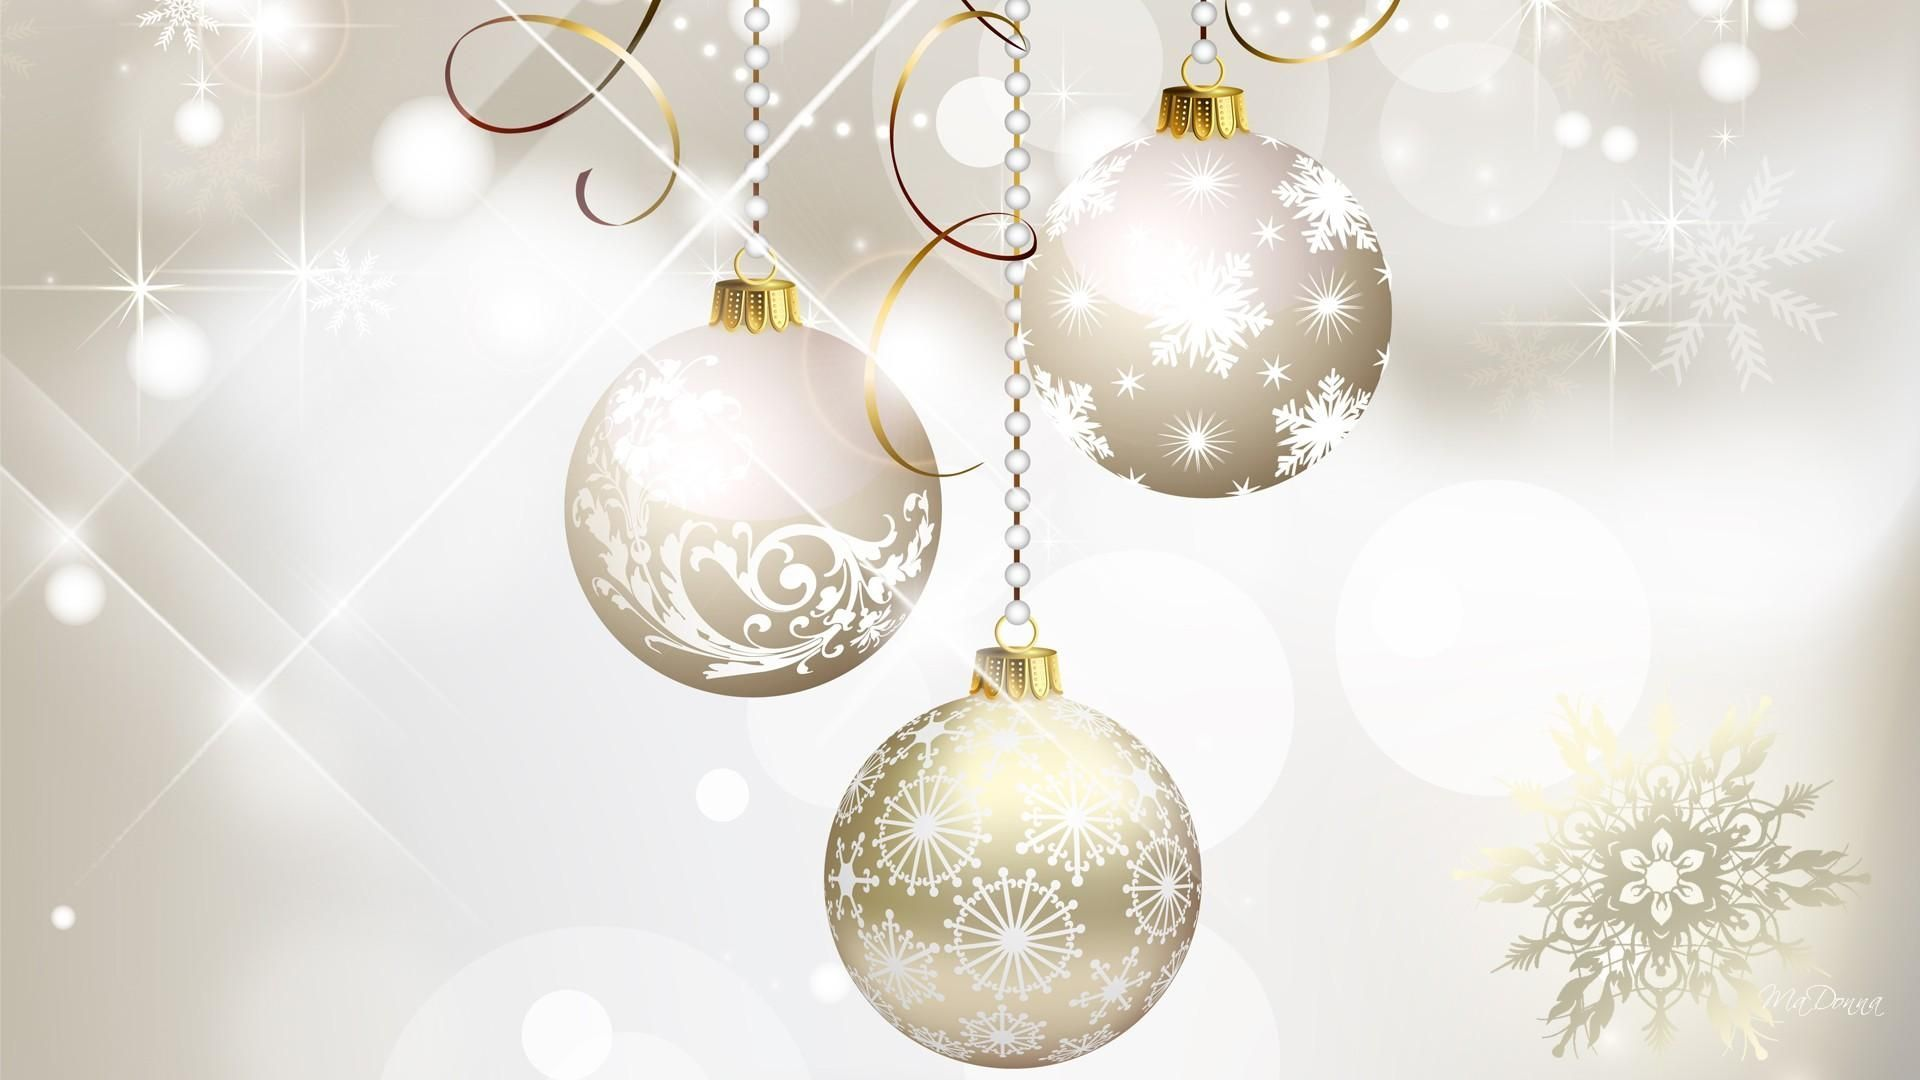 White And Gold Christmas Wallpapers Top Free White And Gold Christmas Backgrounds Wallpaperaccess